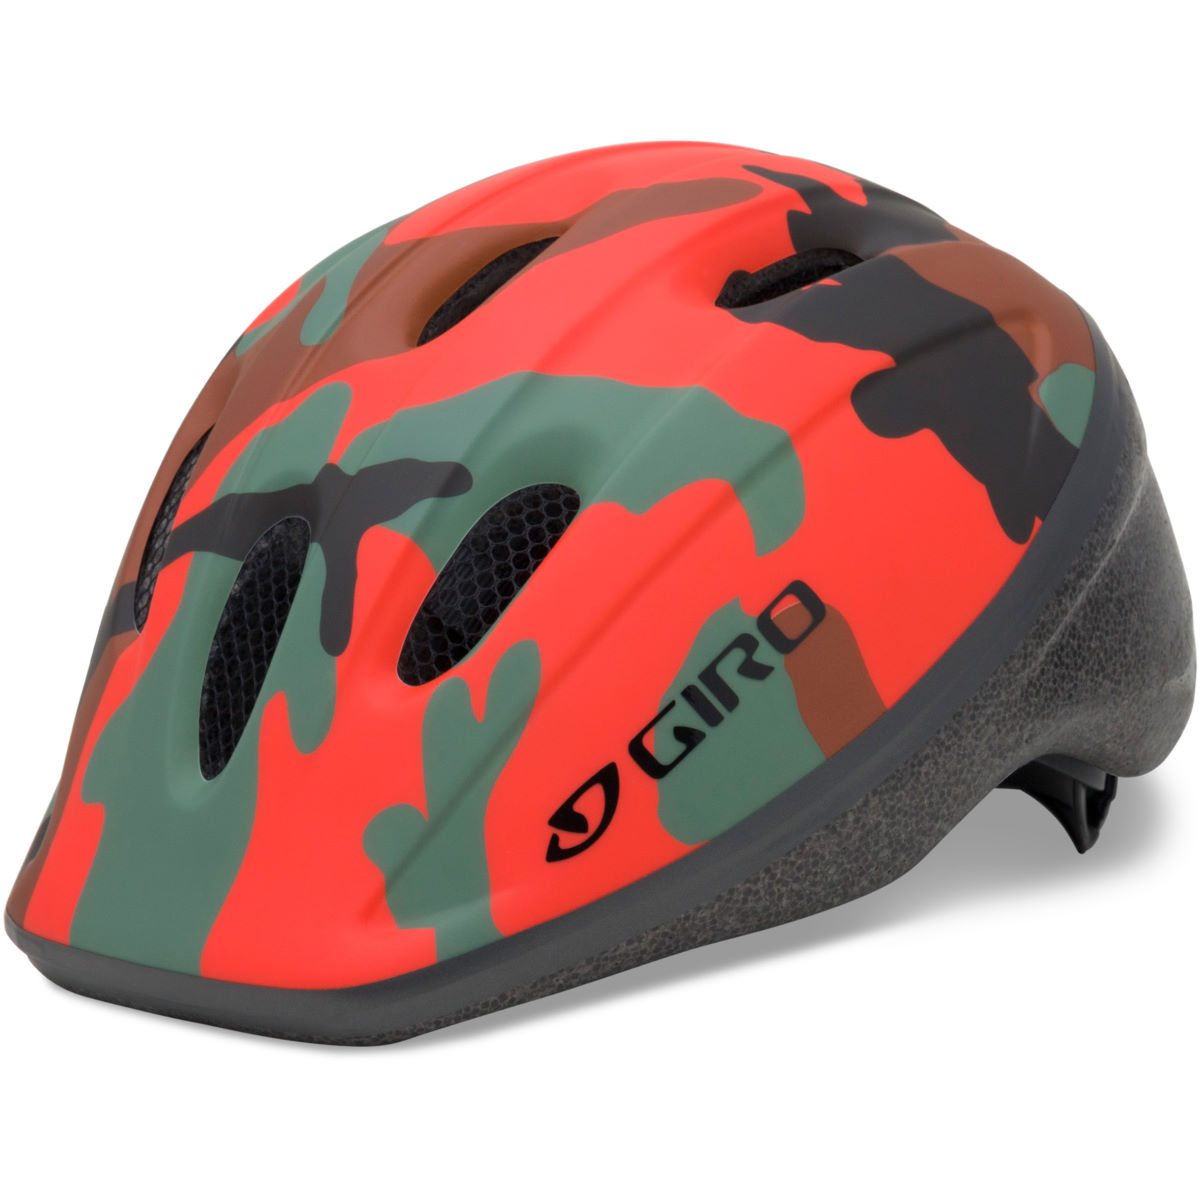 Casque Enfant Giro Rodeo - 50-55cm Glowing Red Camo